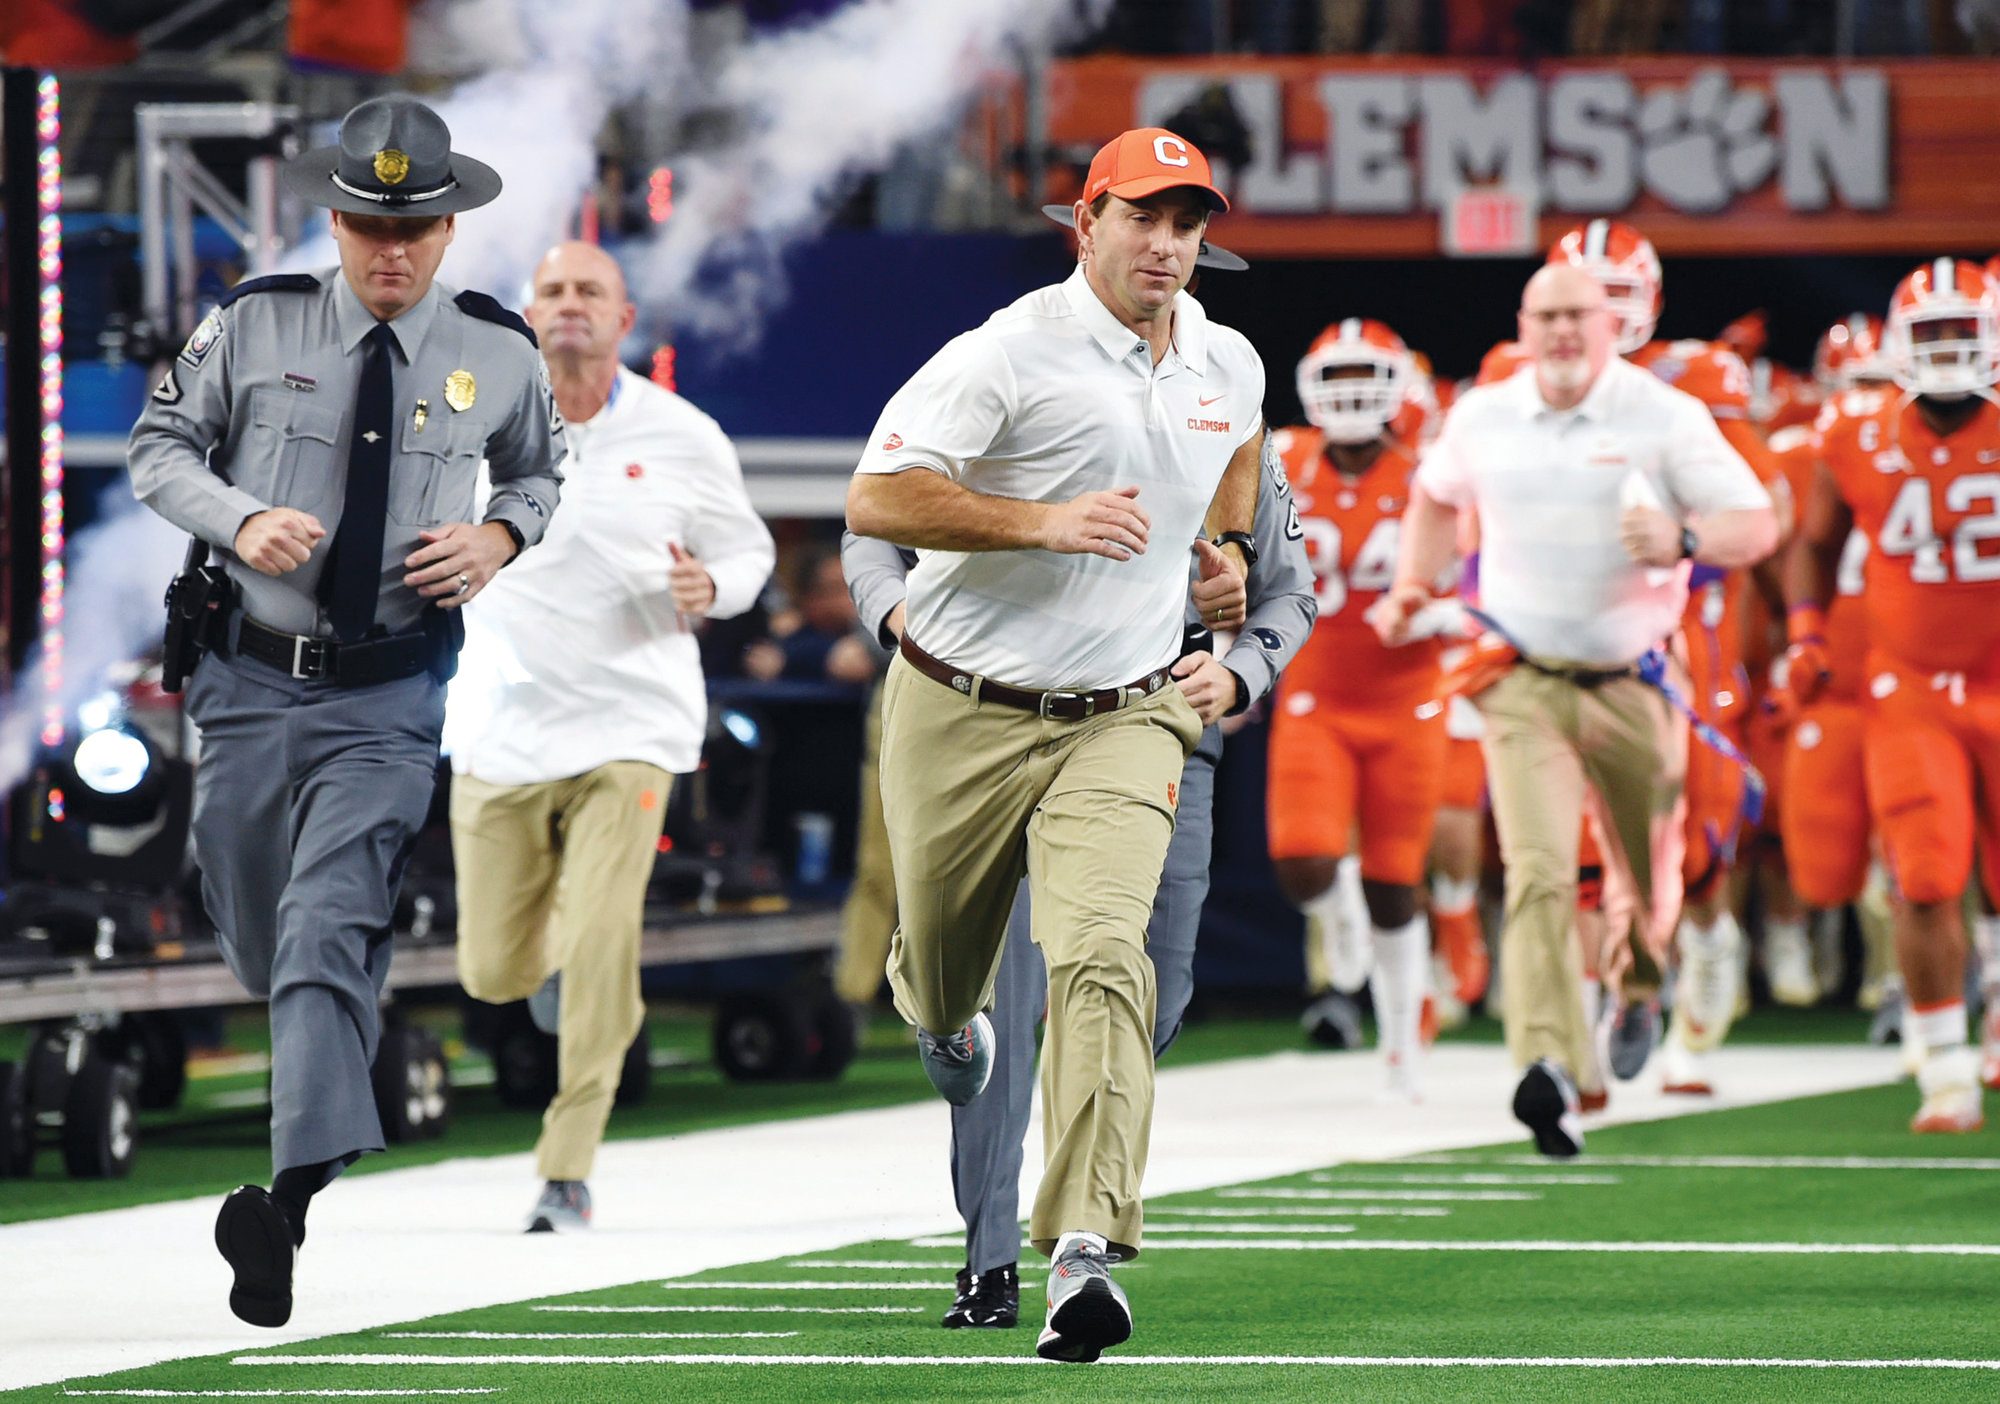 Clemson head coach Dabo Swinney jogs onto the field for the first half of the Cotton Bowl playoff semifinal game against Notre Dame on Saturday in Arlington, Texas. The Tigers earned a spot in Monday's national championship game against Alabama with a 30-3 victory over the Fighting Irish.